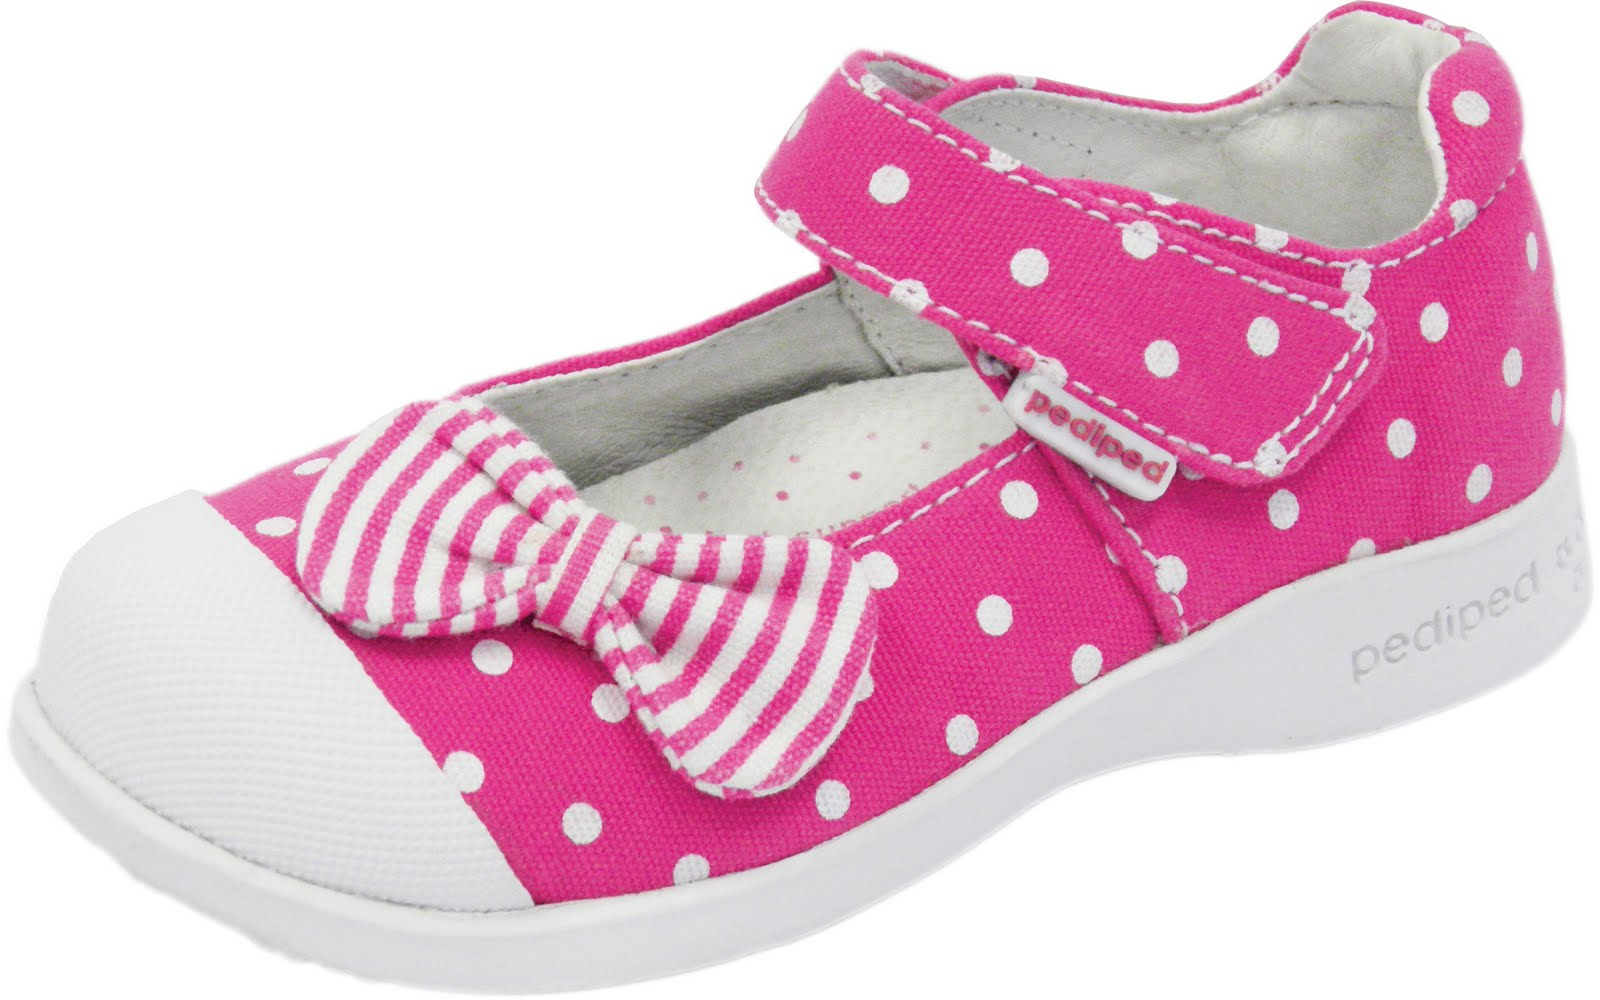 e18d8ba8d My daughter was first introduced to pediped Flex shoes when she was only 2-1 2  years old with the Giselle sandals. She just fell in love with them.